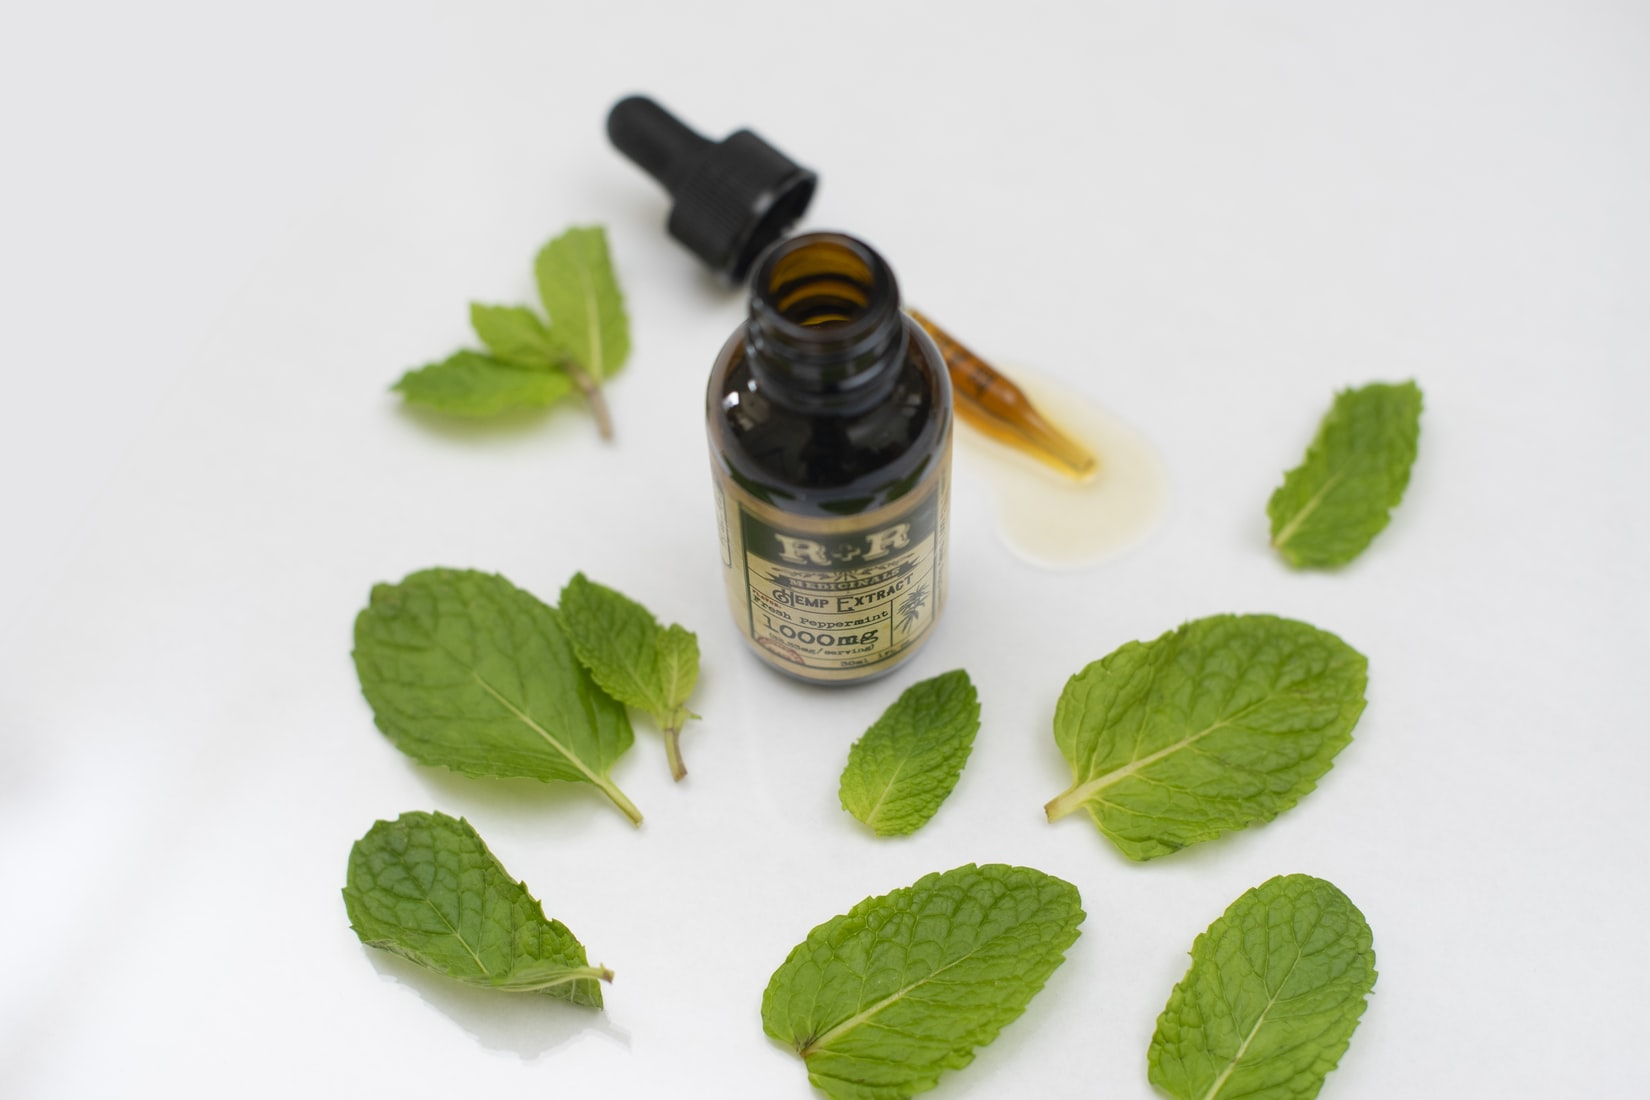 Why is CBD oil so popular?